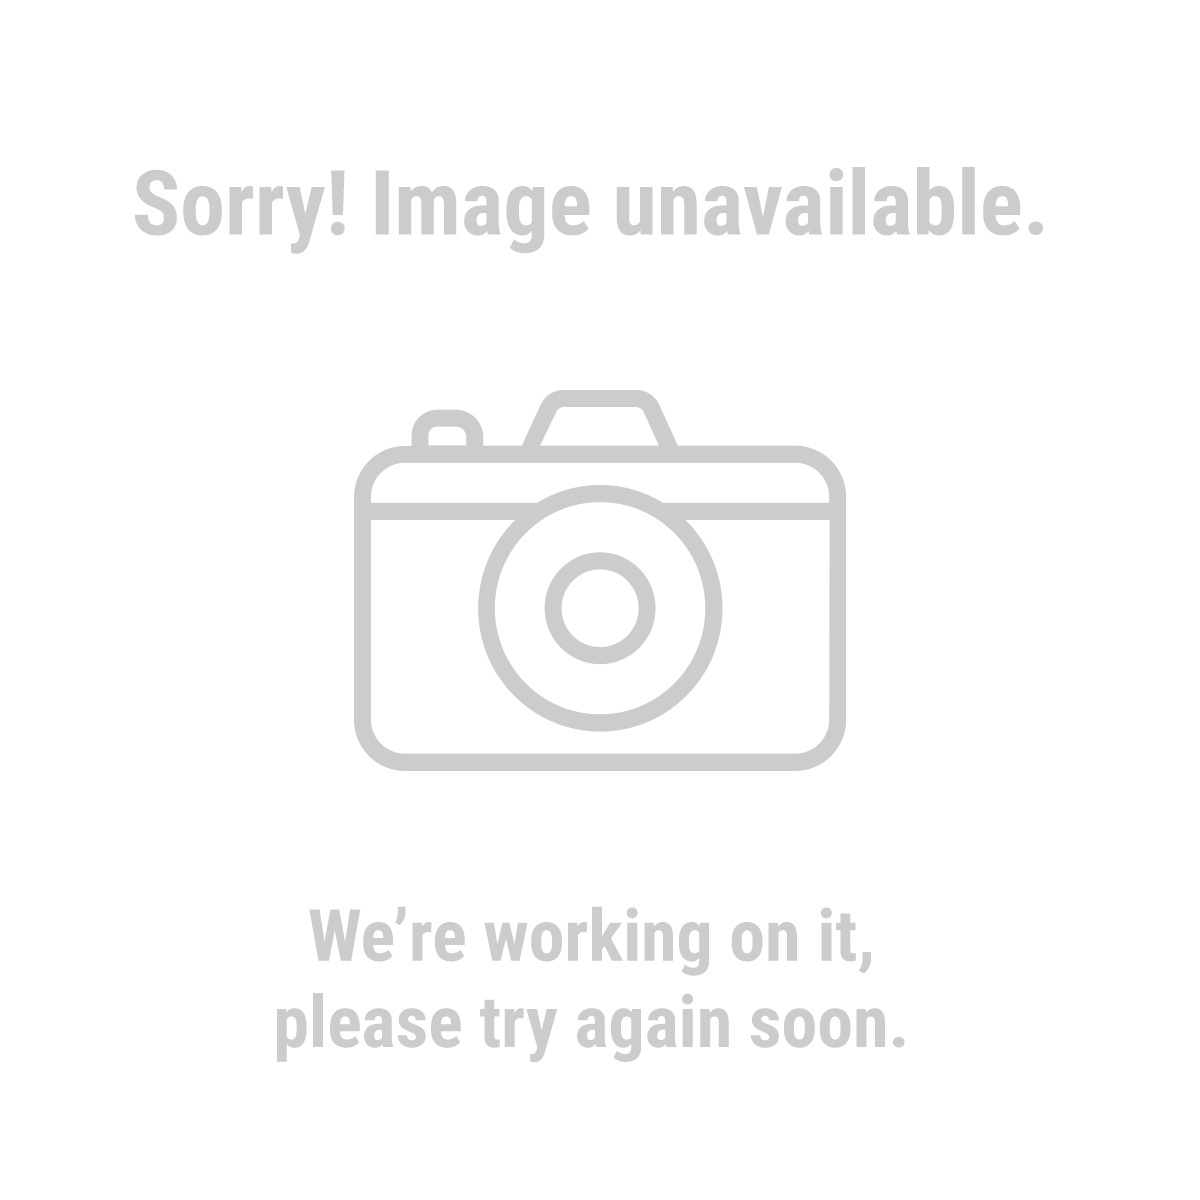 96619 Momentary Power Foot Switch